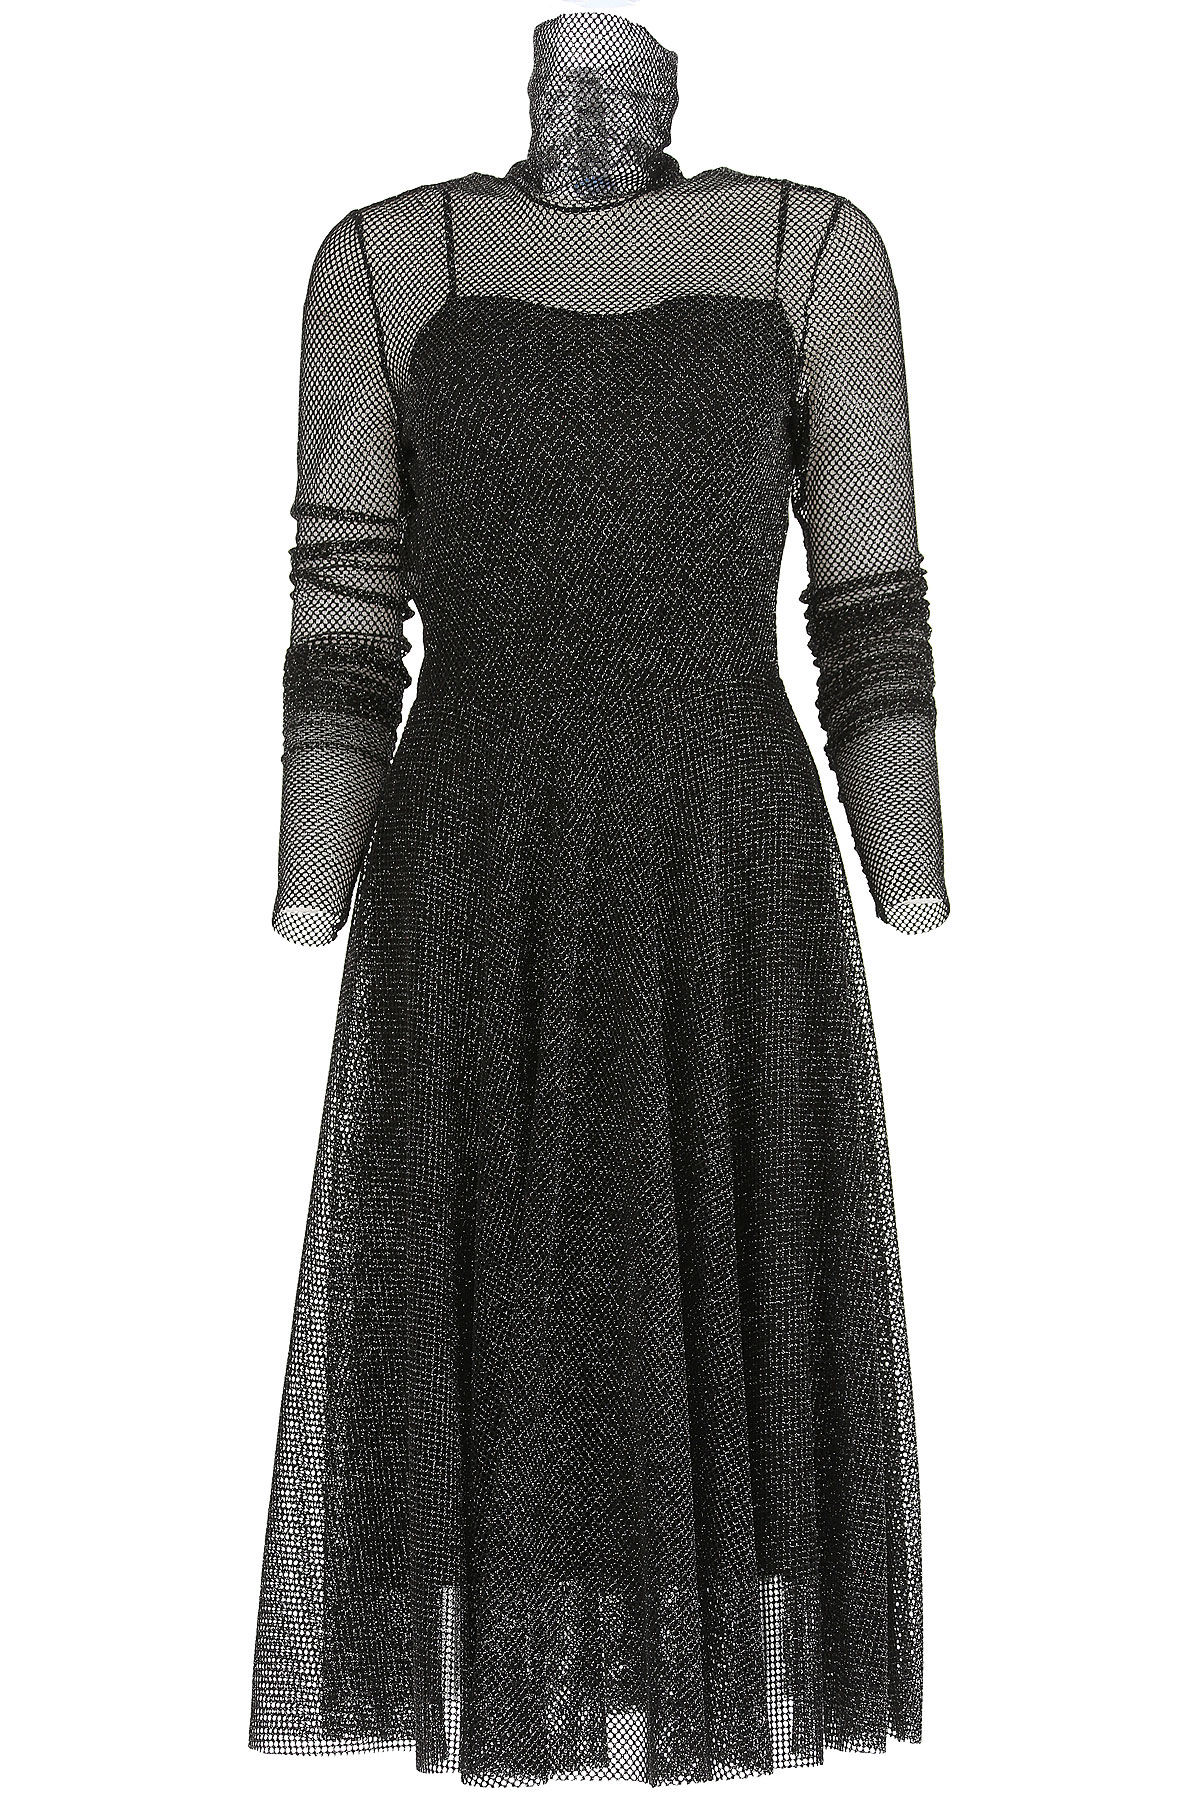 Image of Philosophy di Lorenzo Serafini Dress for Women, Evening Cocktail Party, Black, polyestere, 2017, 10 4 6 8